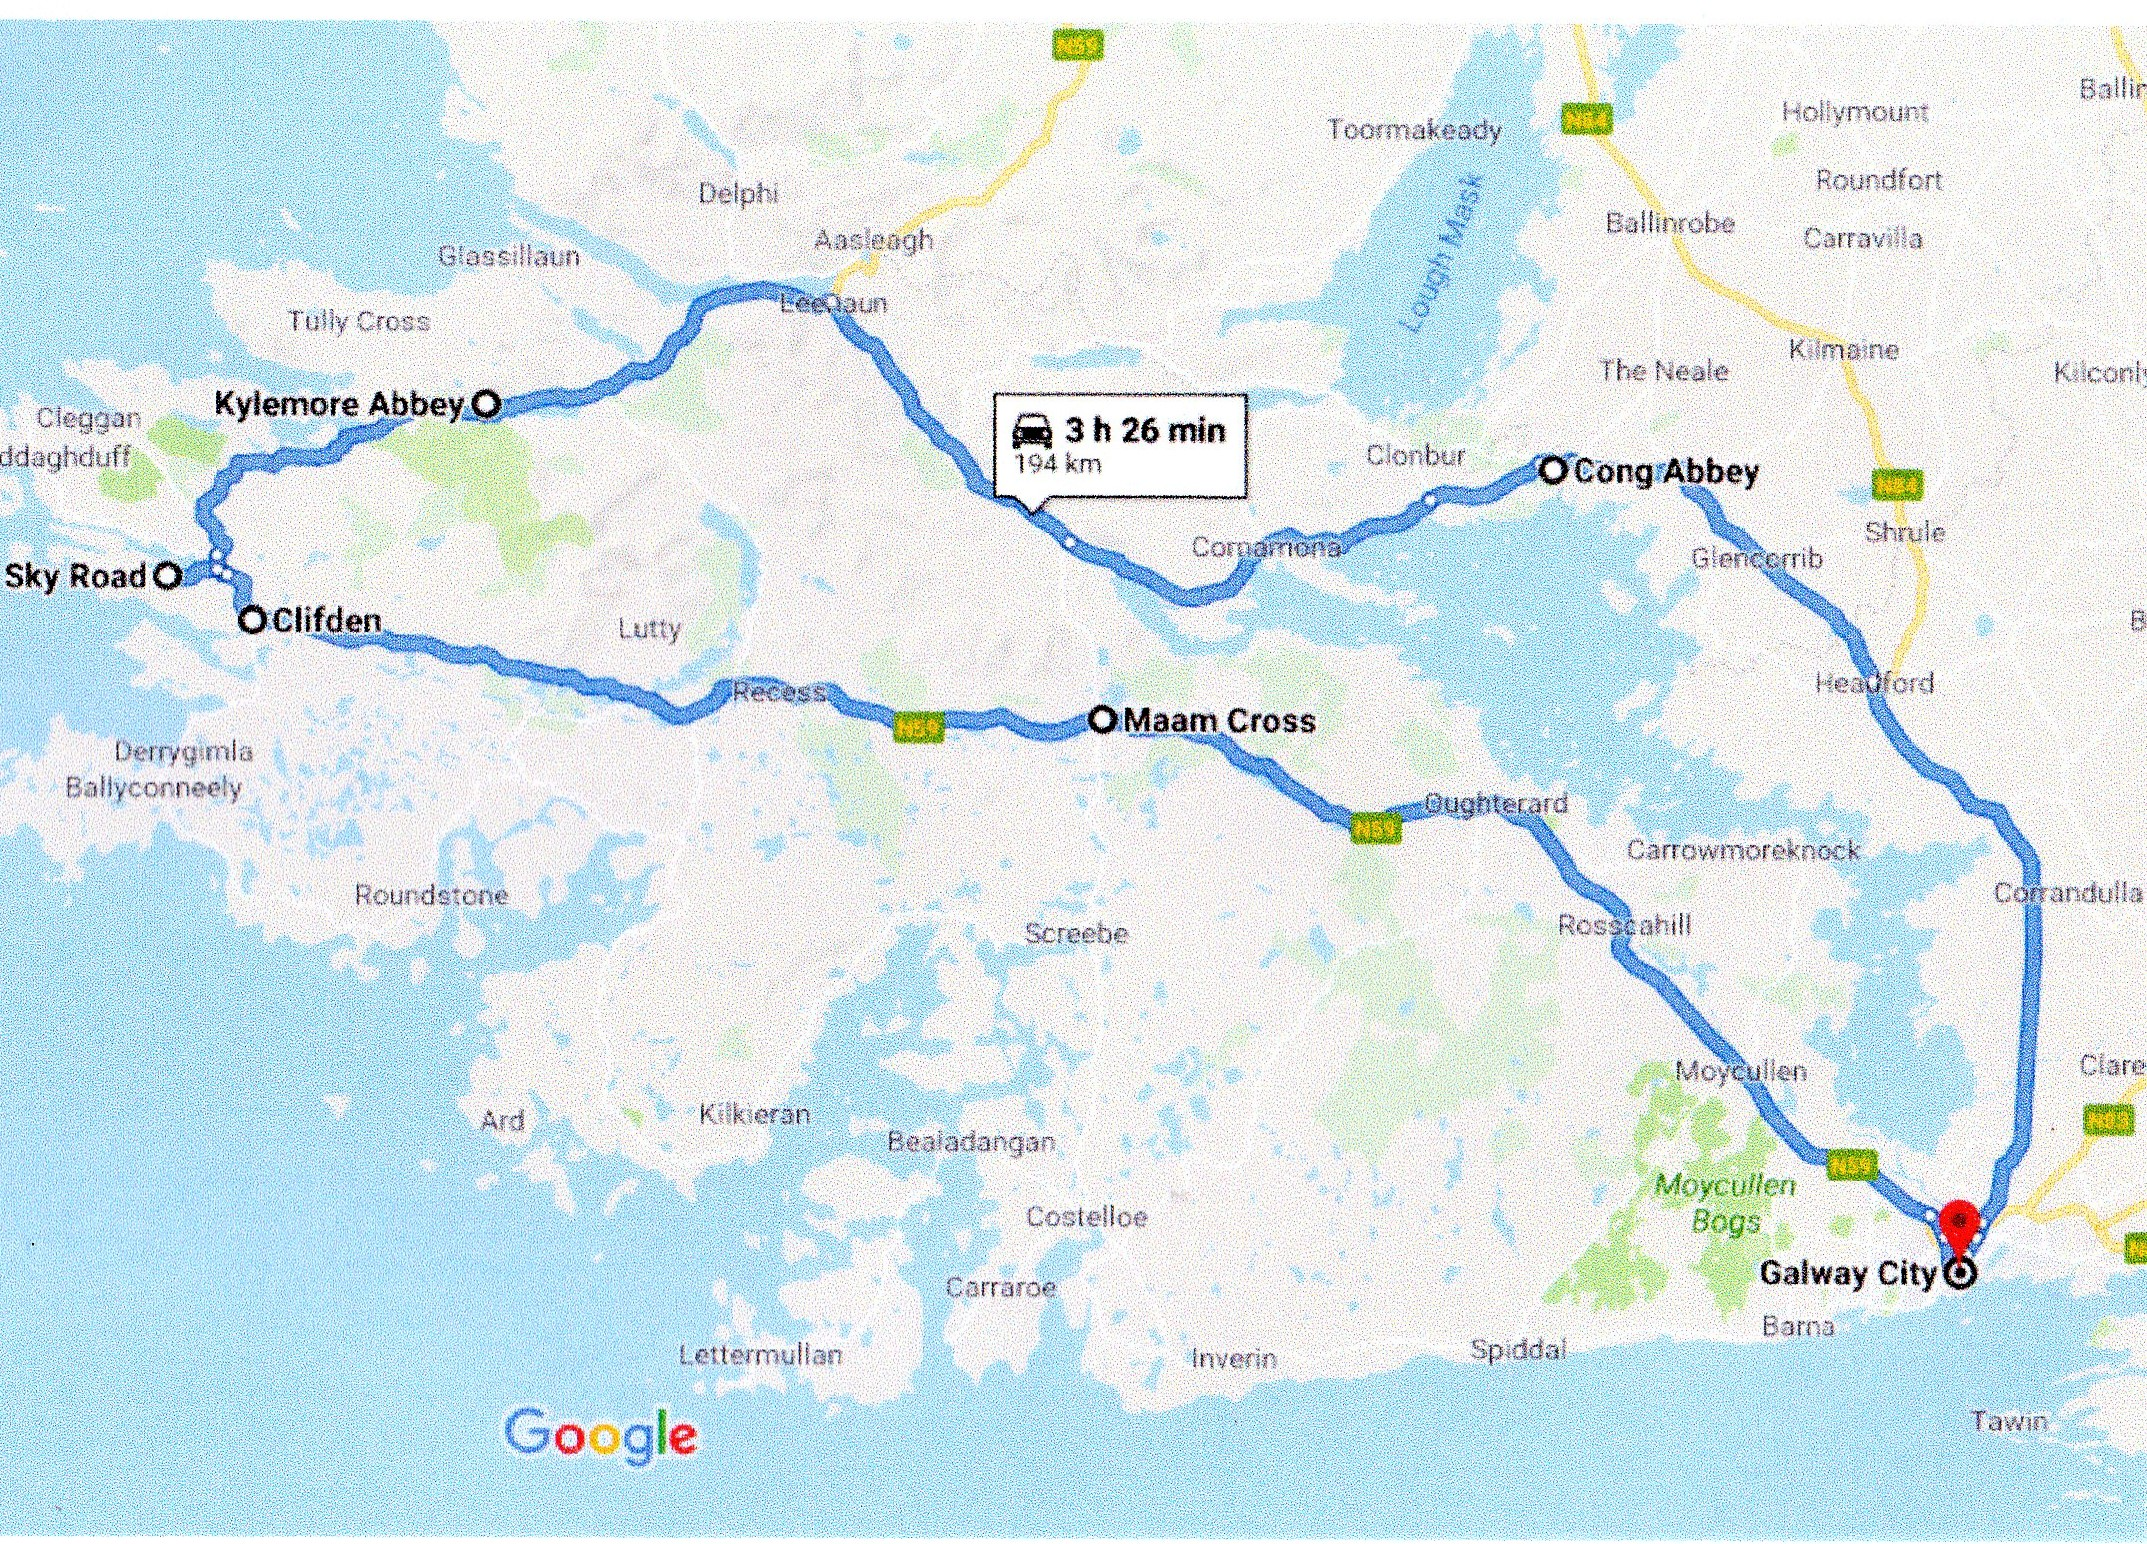 google route map of a connemara day tour